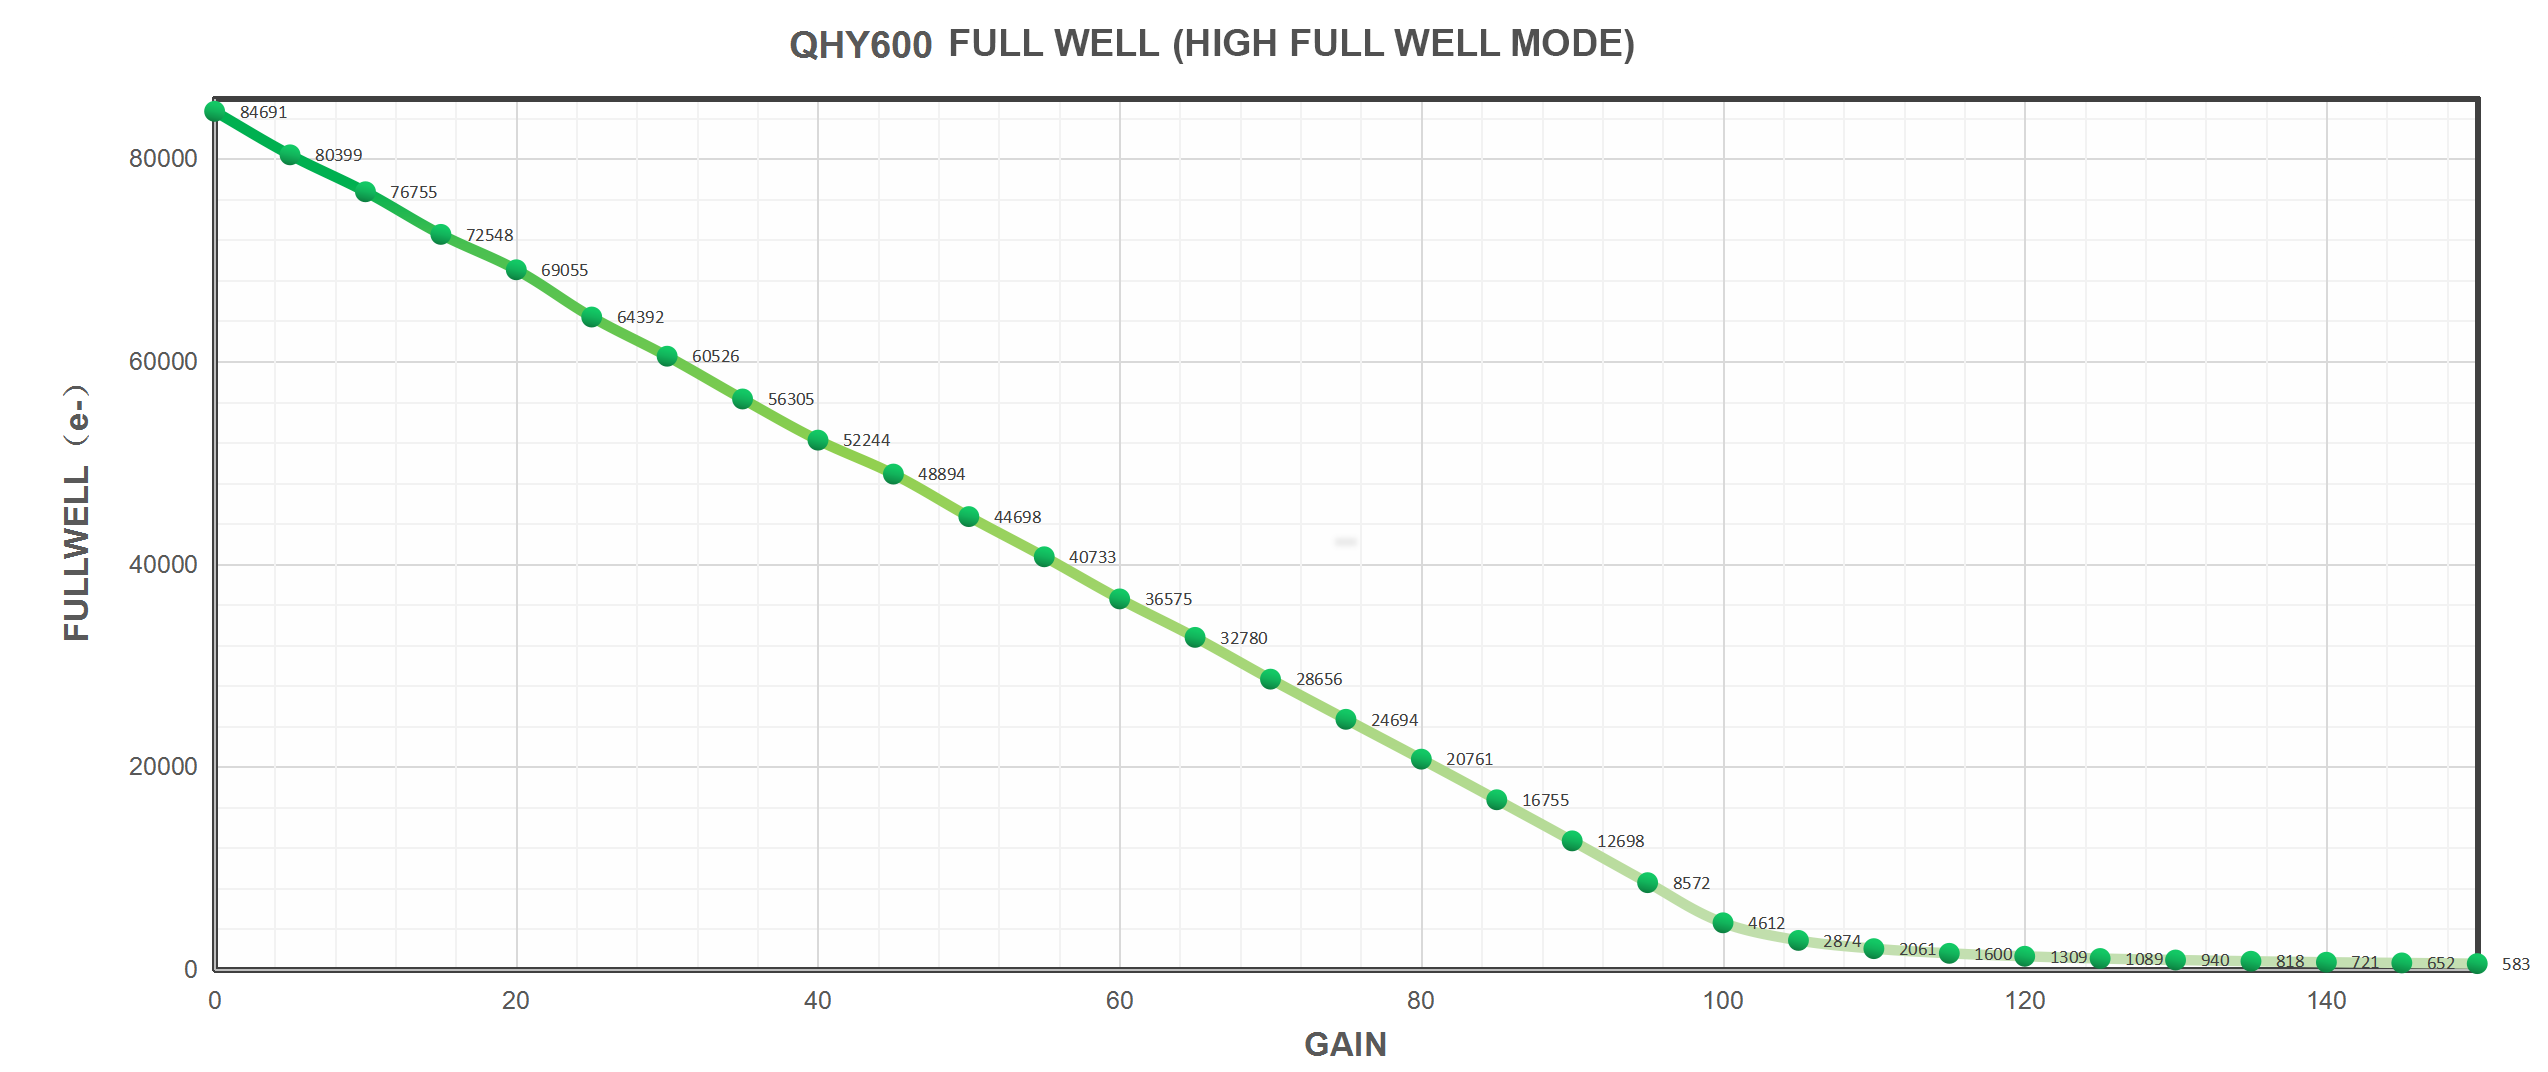 QHY600 Full Well (High Full Well Mode)